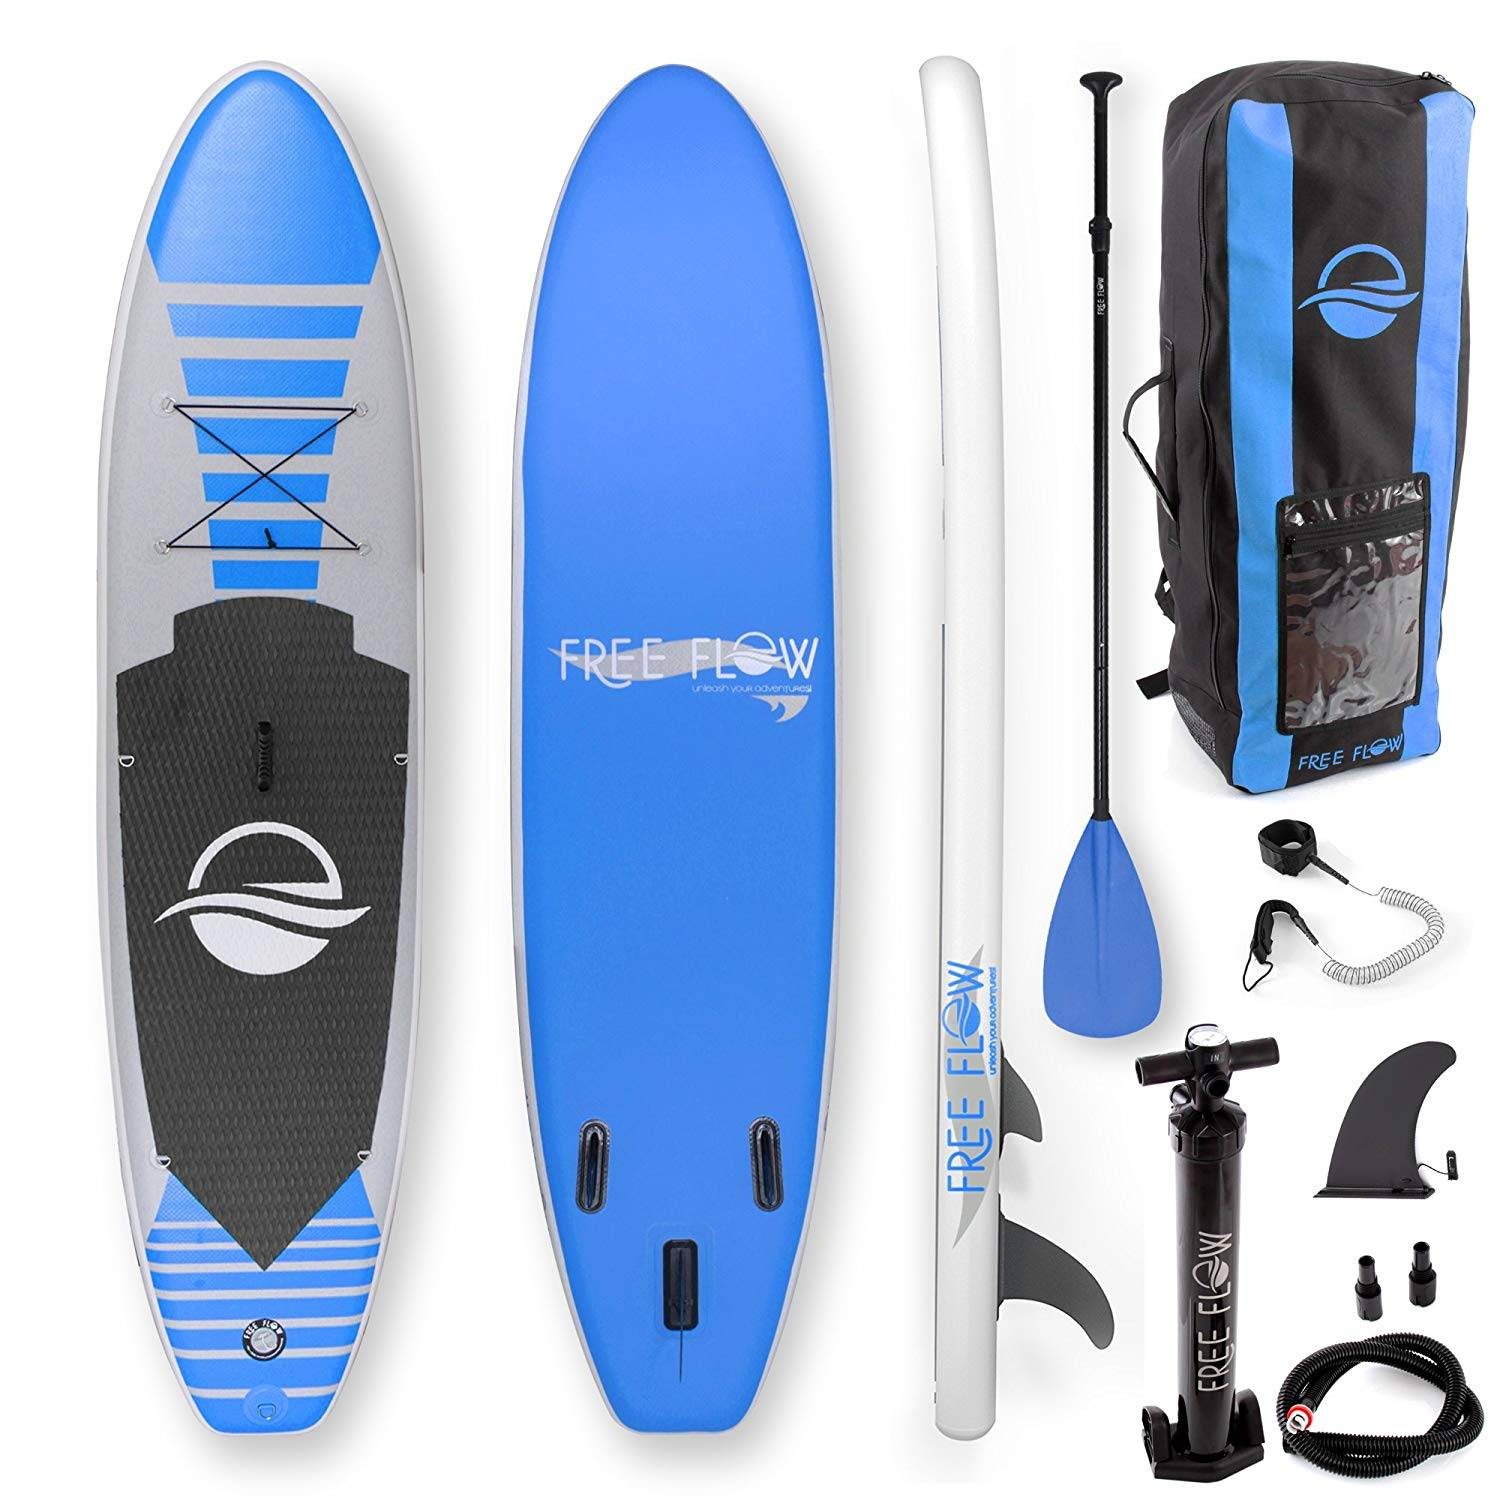 serenlife premium - image serenlife-premium on https://supboardgear.com